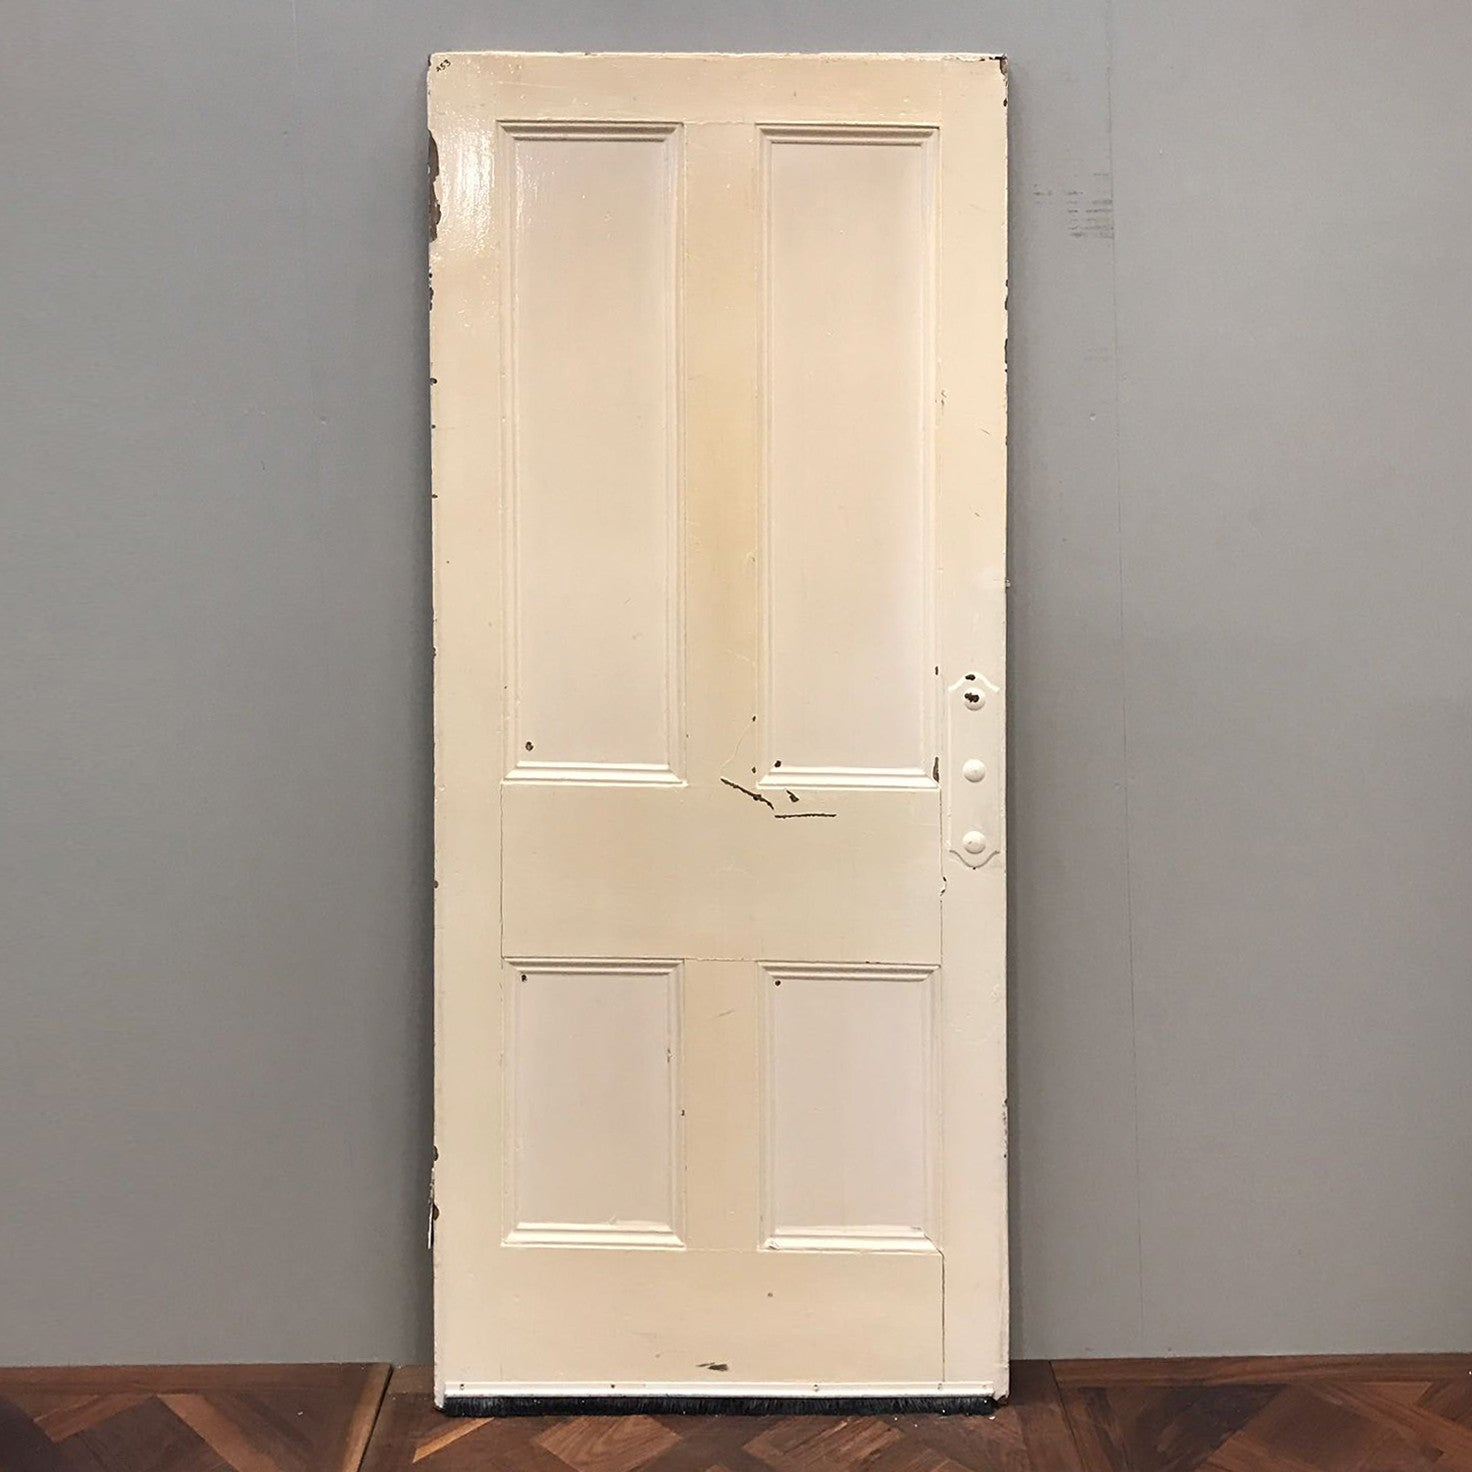 Reclaimed Victorian Four Panel Door - 204cm x 86cm x 3.5cm - architectural-forum